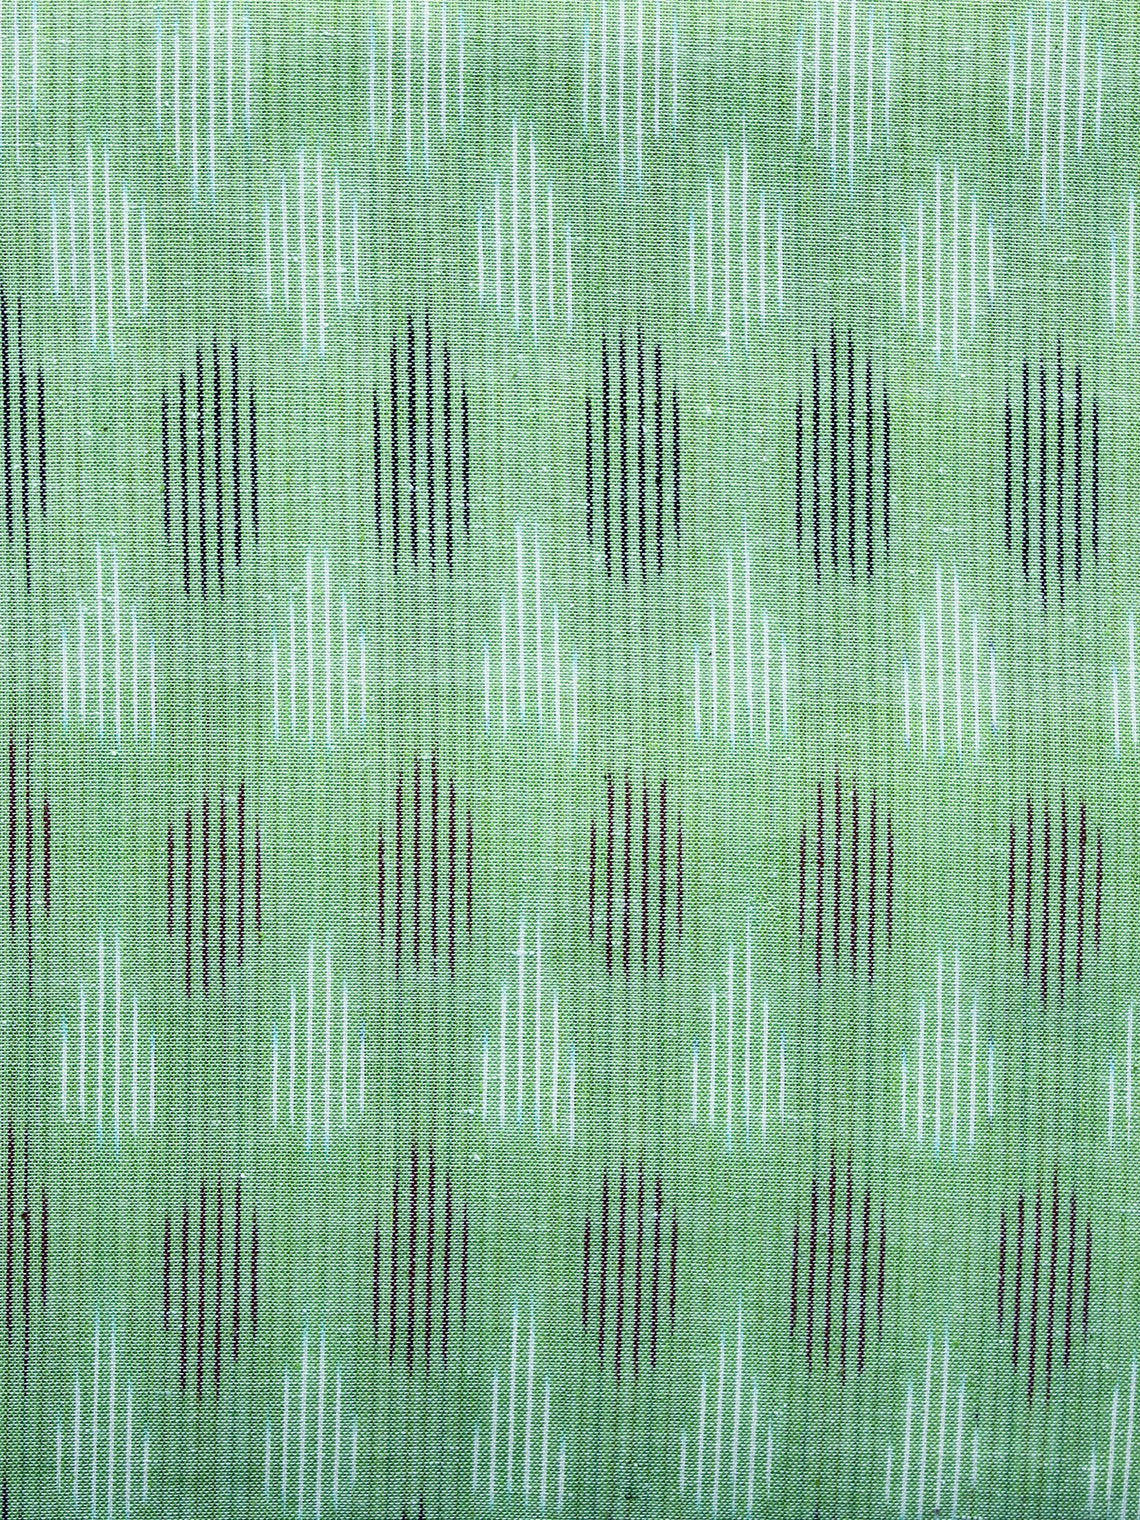 Light Green White Black Pochampally Hand Weaved Ikat Fabric Per Meter - F003F1230